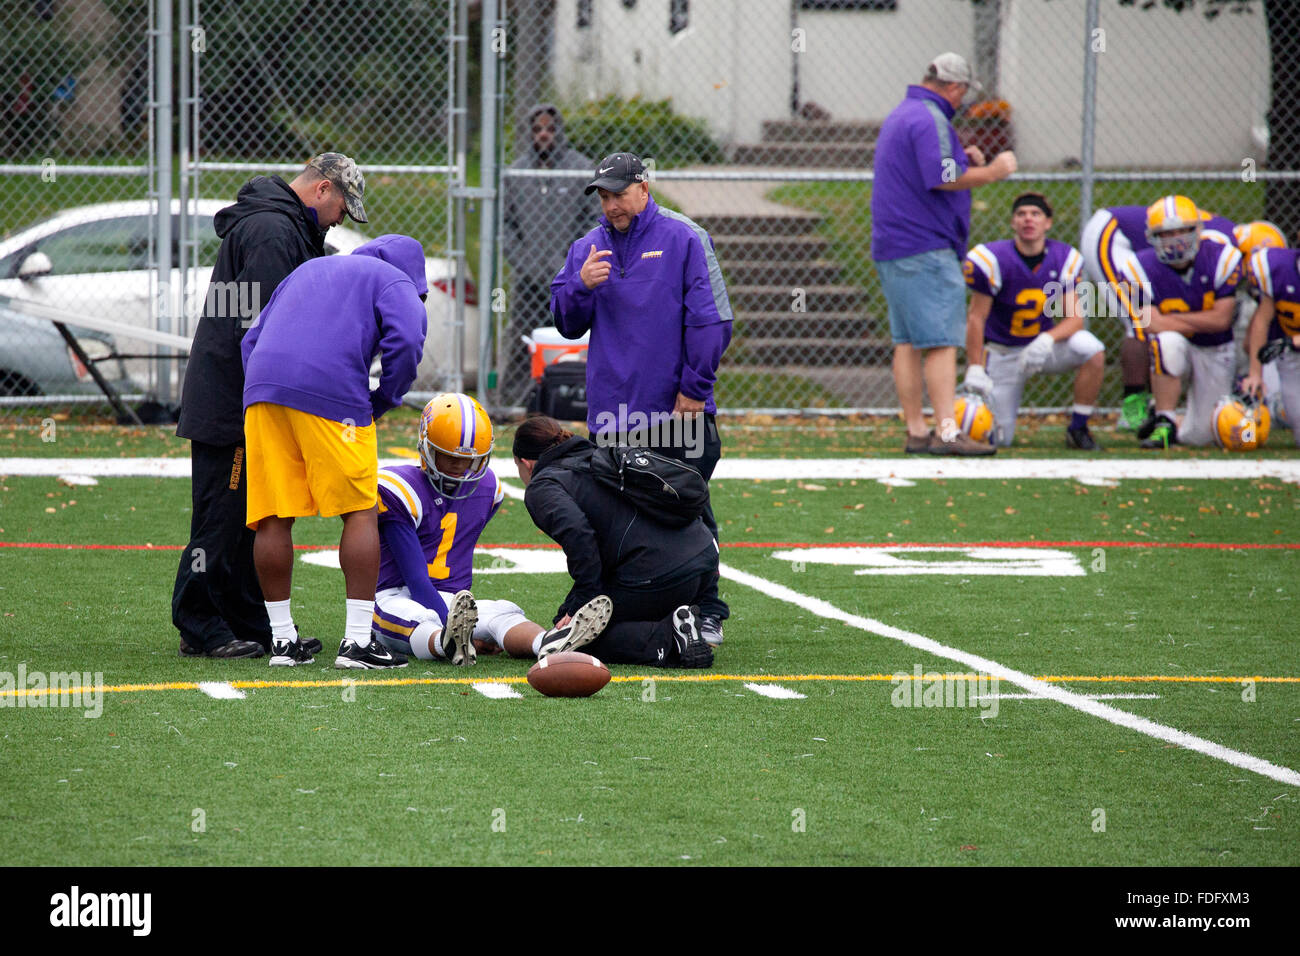 Trainers help injured Cretin-Derham Hall High School football player recover while sitting on ground. St Paul Minnesota - Stock Image